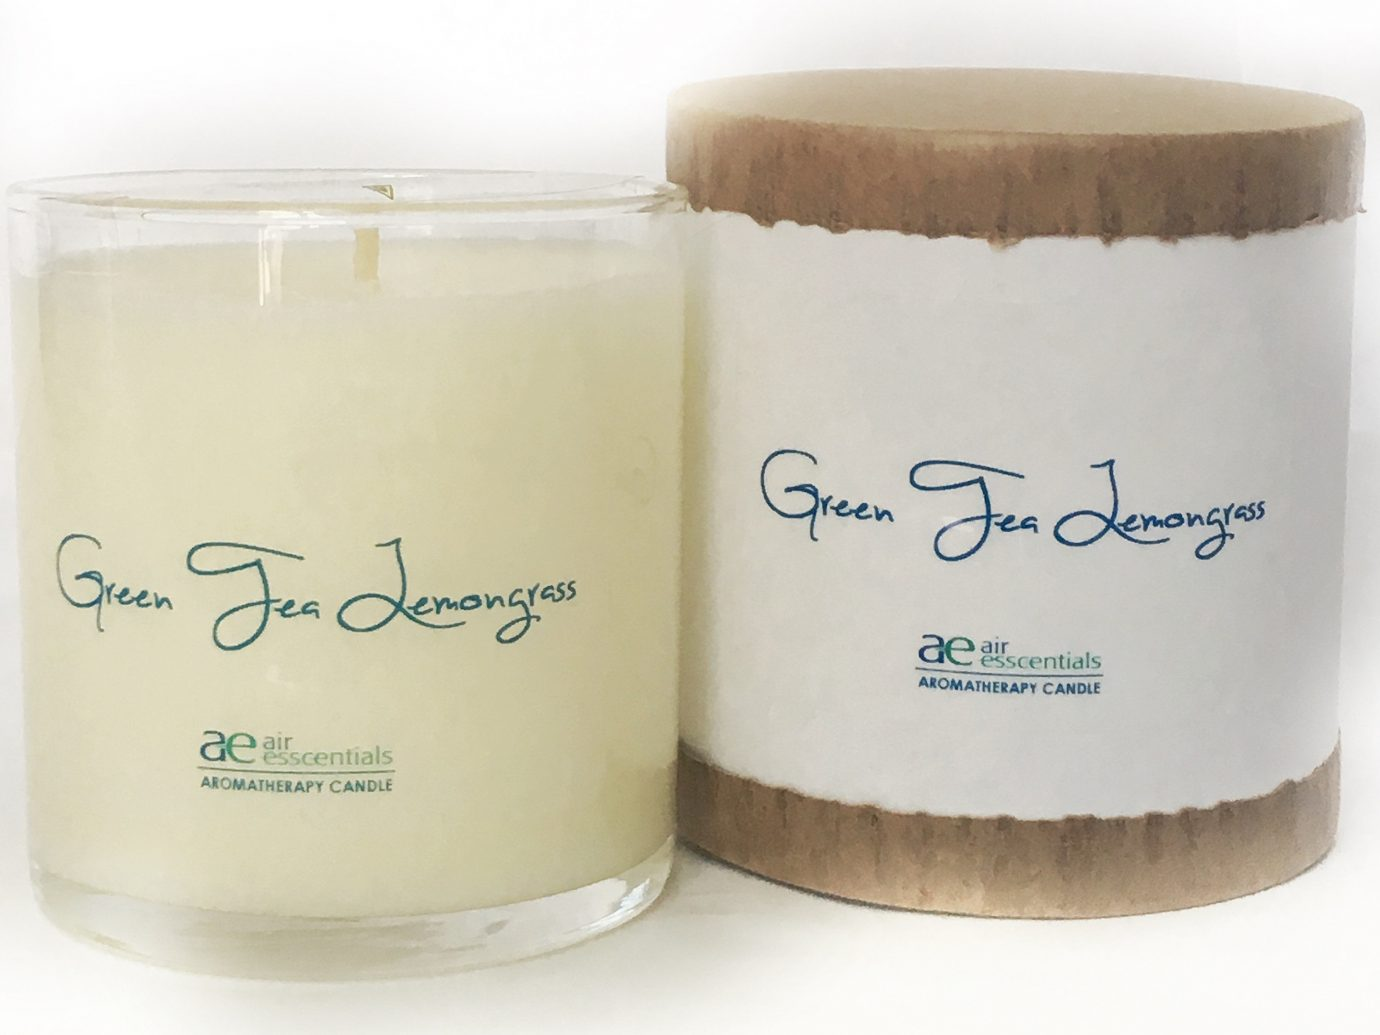 Hotels Luxury Travel cup candle lighting coconut food flavor